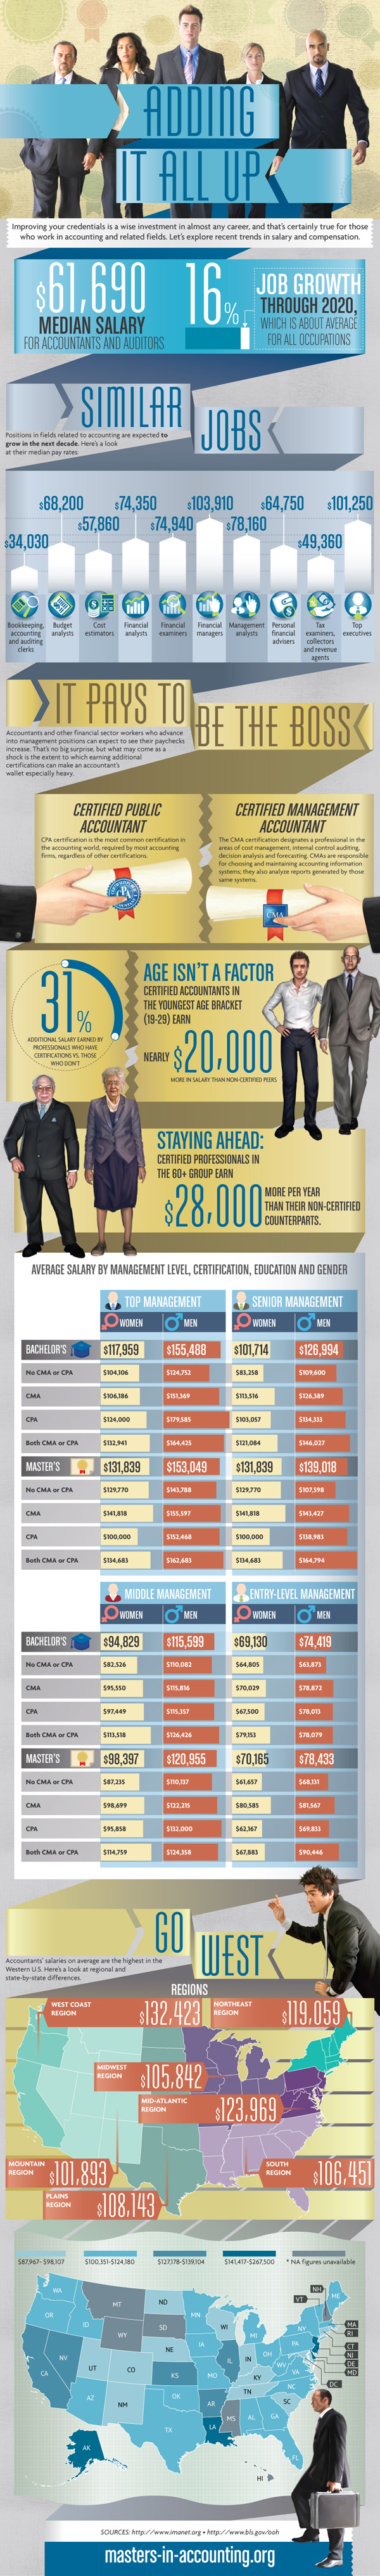 Accountant Salary USA-Infographic